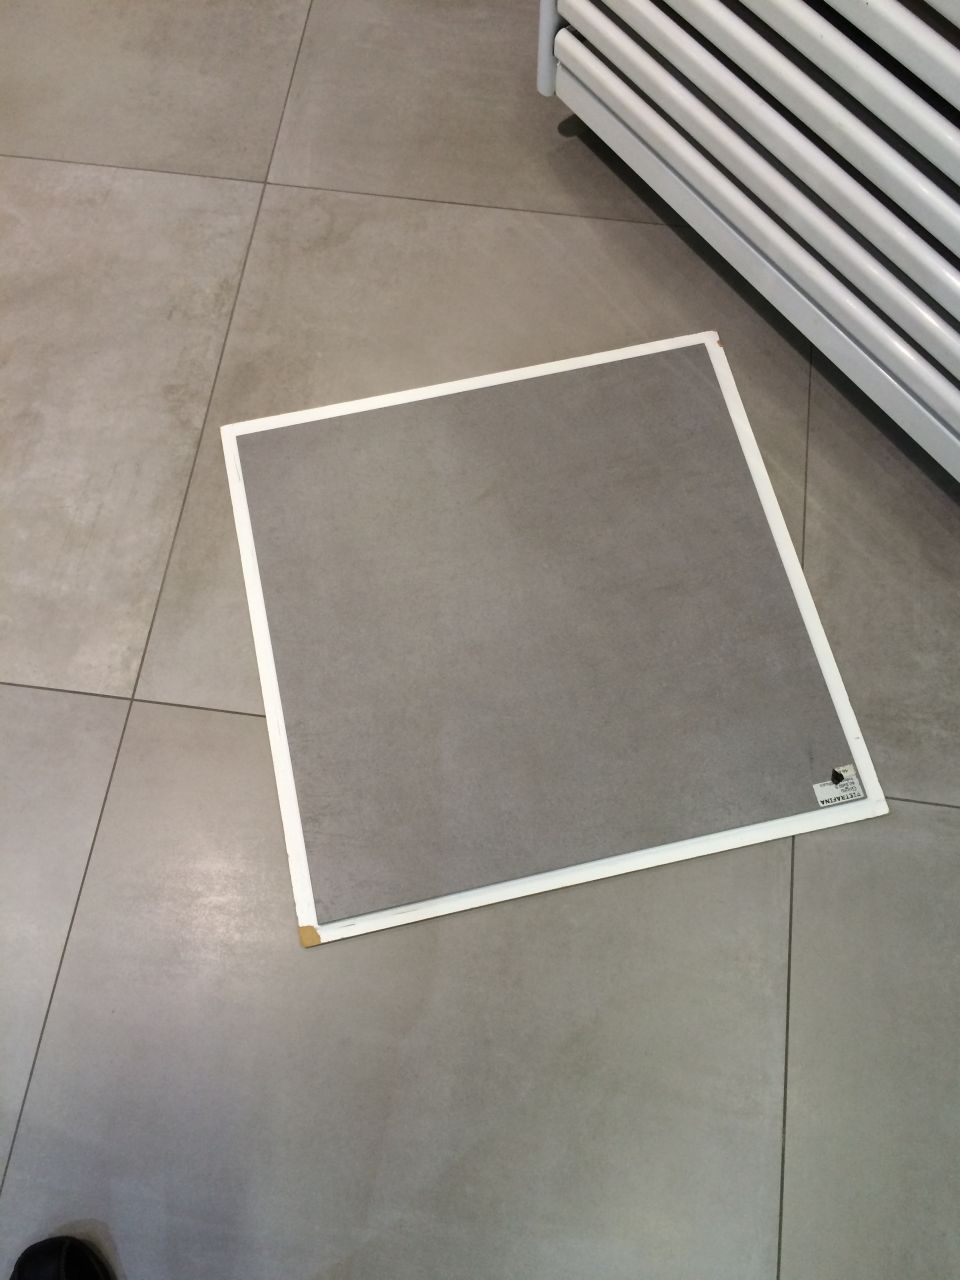 Carrelage non rectifie for Pose carrelage sans joint